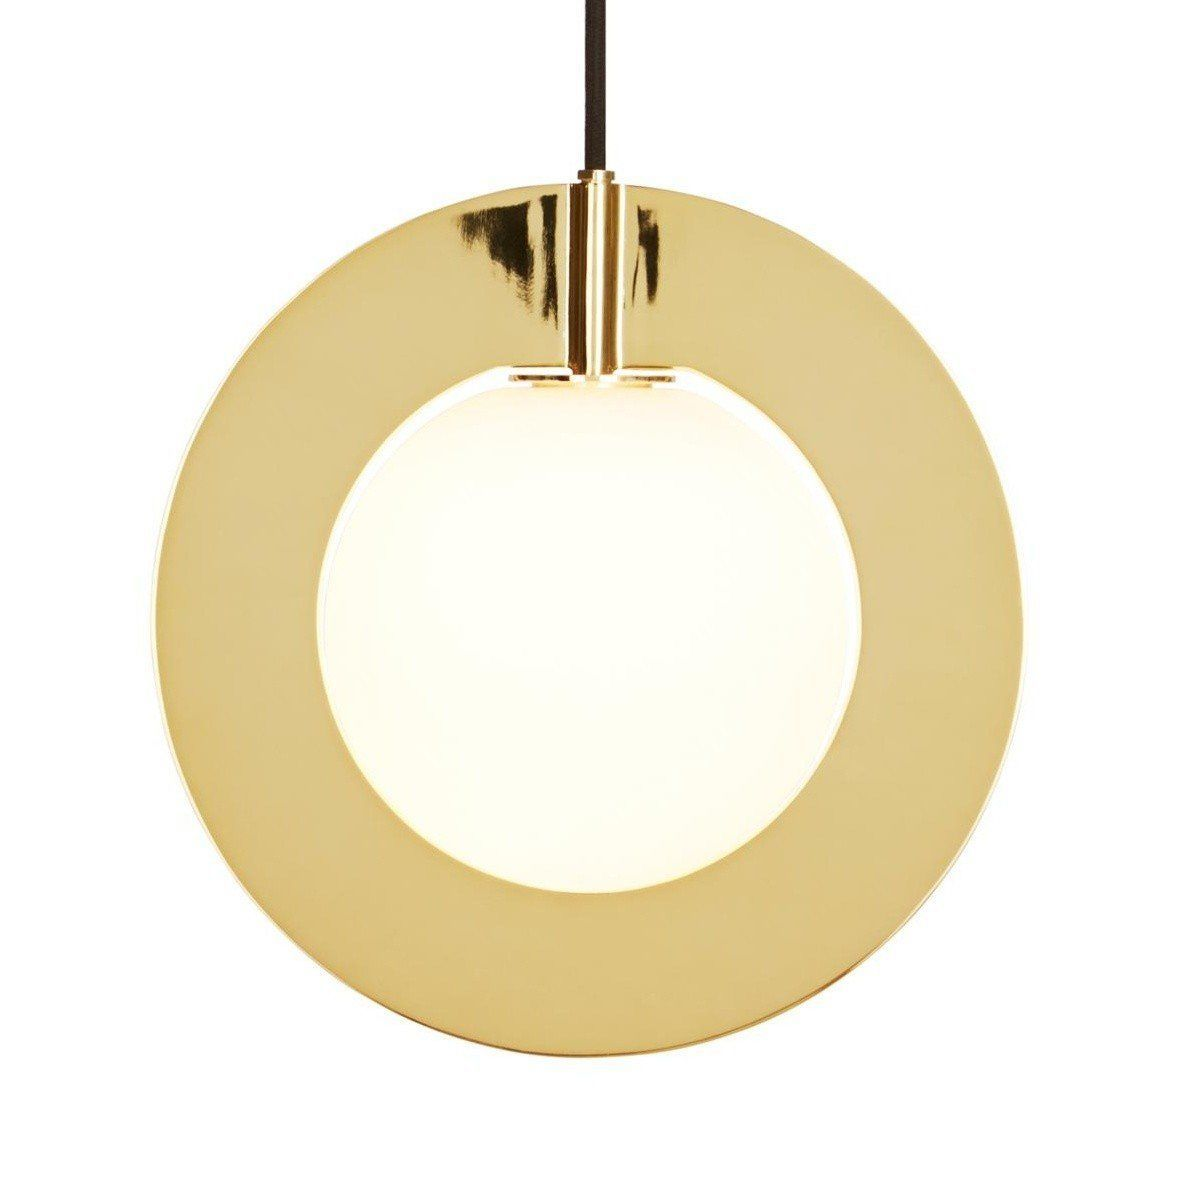 Tom Dixon Plane Round Suspension Lamp | AmbienteDirect